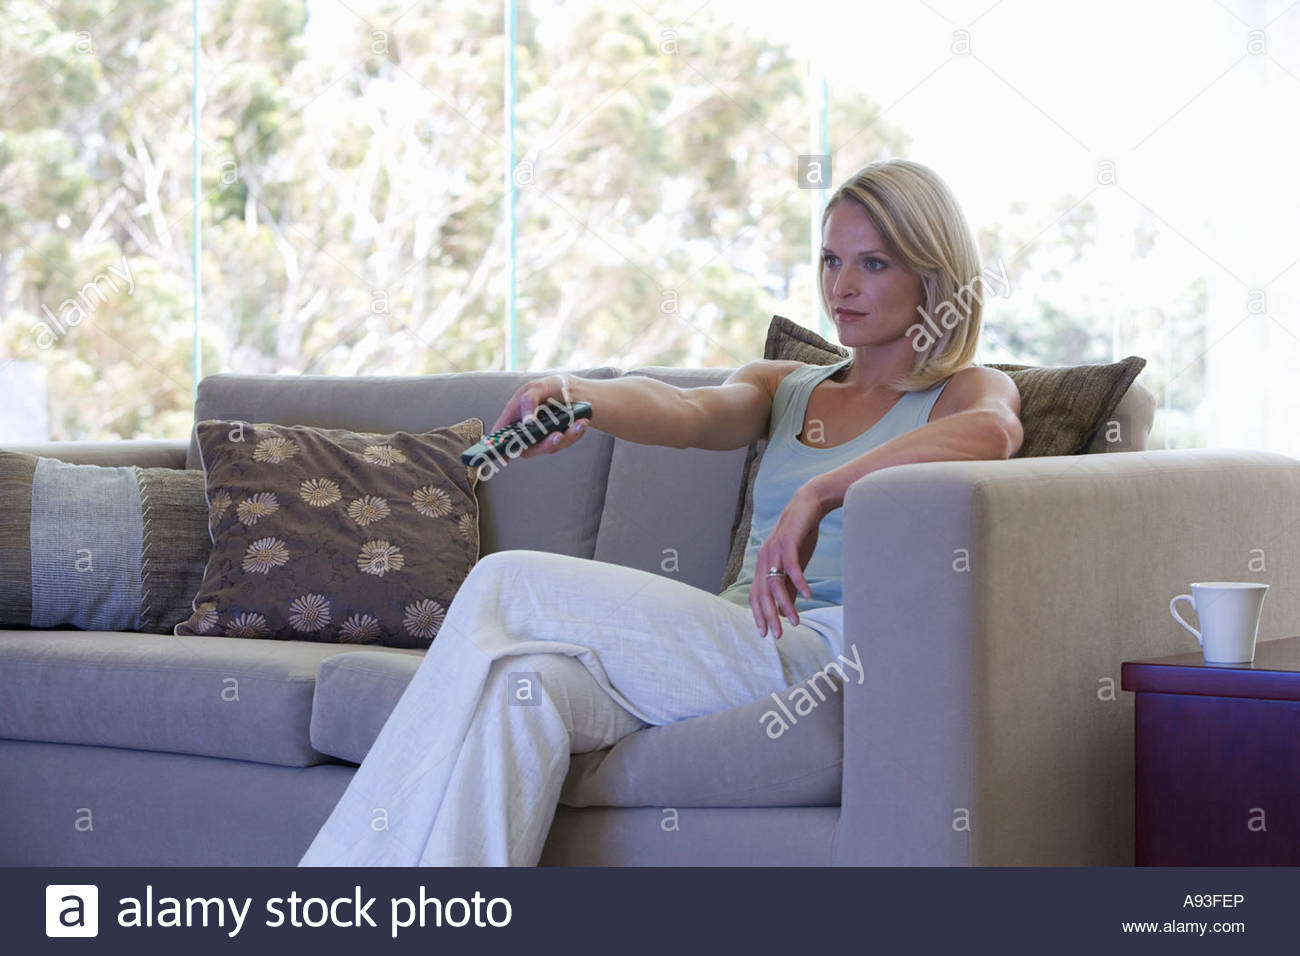 A woman using a remote control - Stock Image